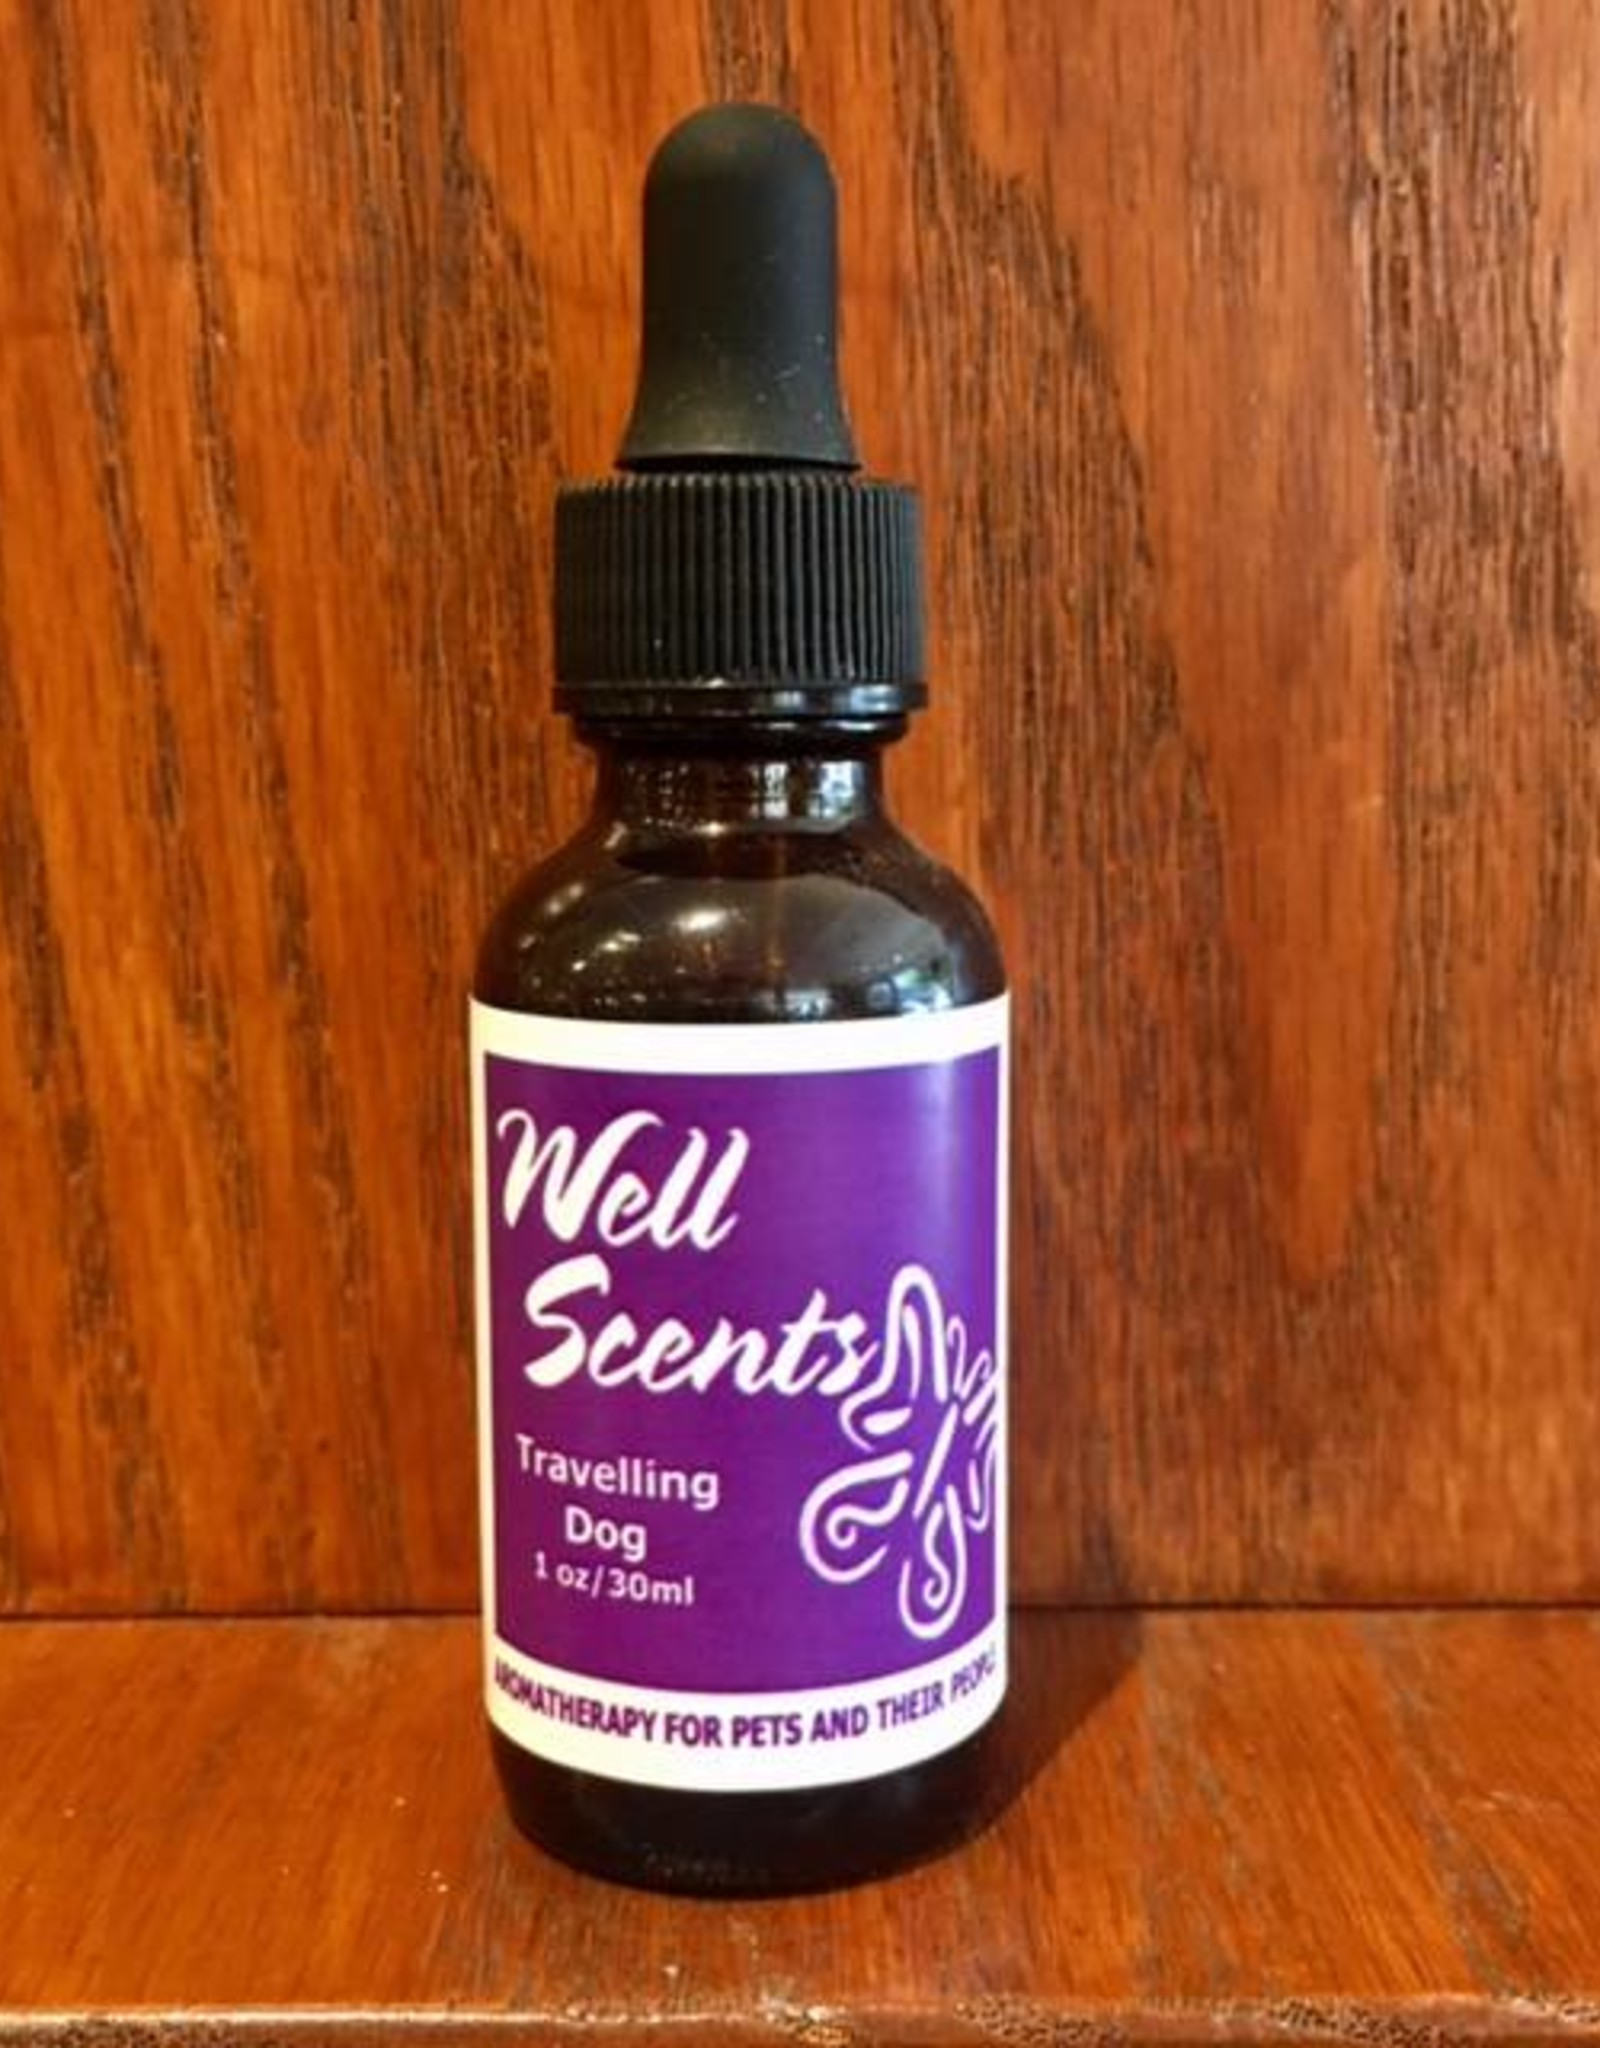 Well Scents Well Scents Travelling Dog 1oz